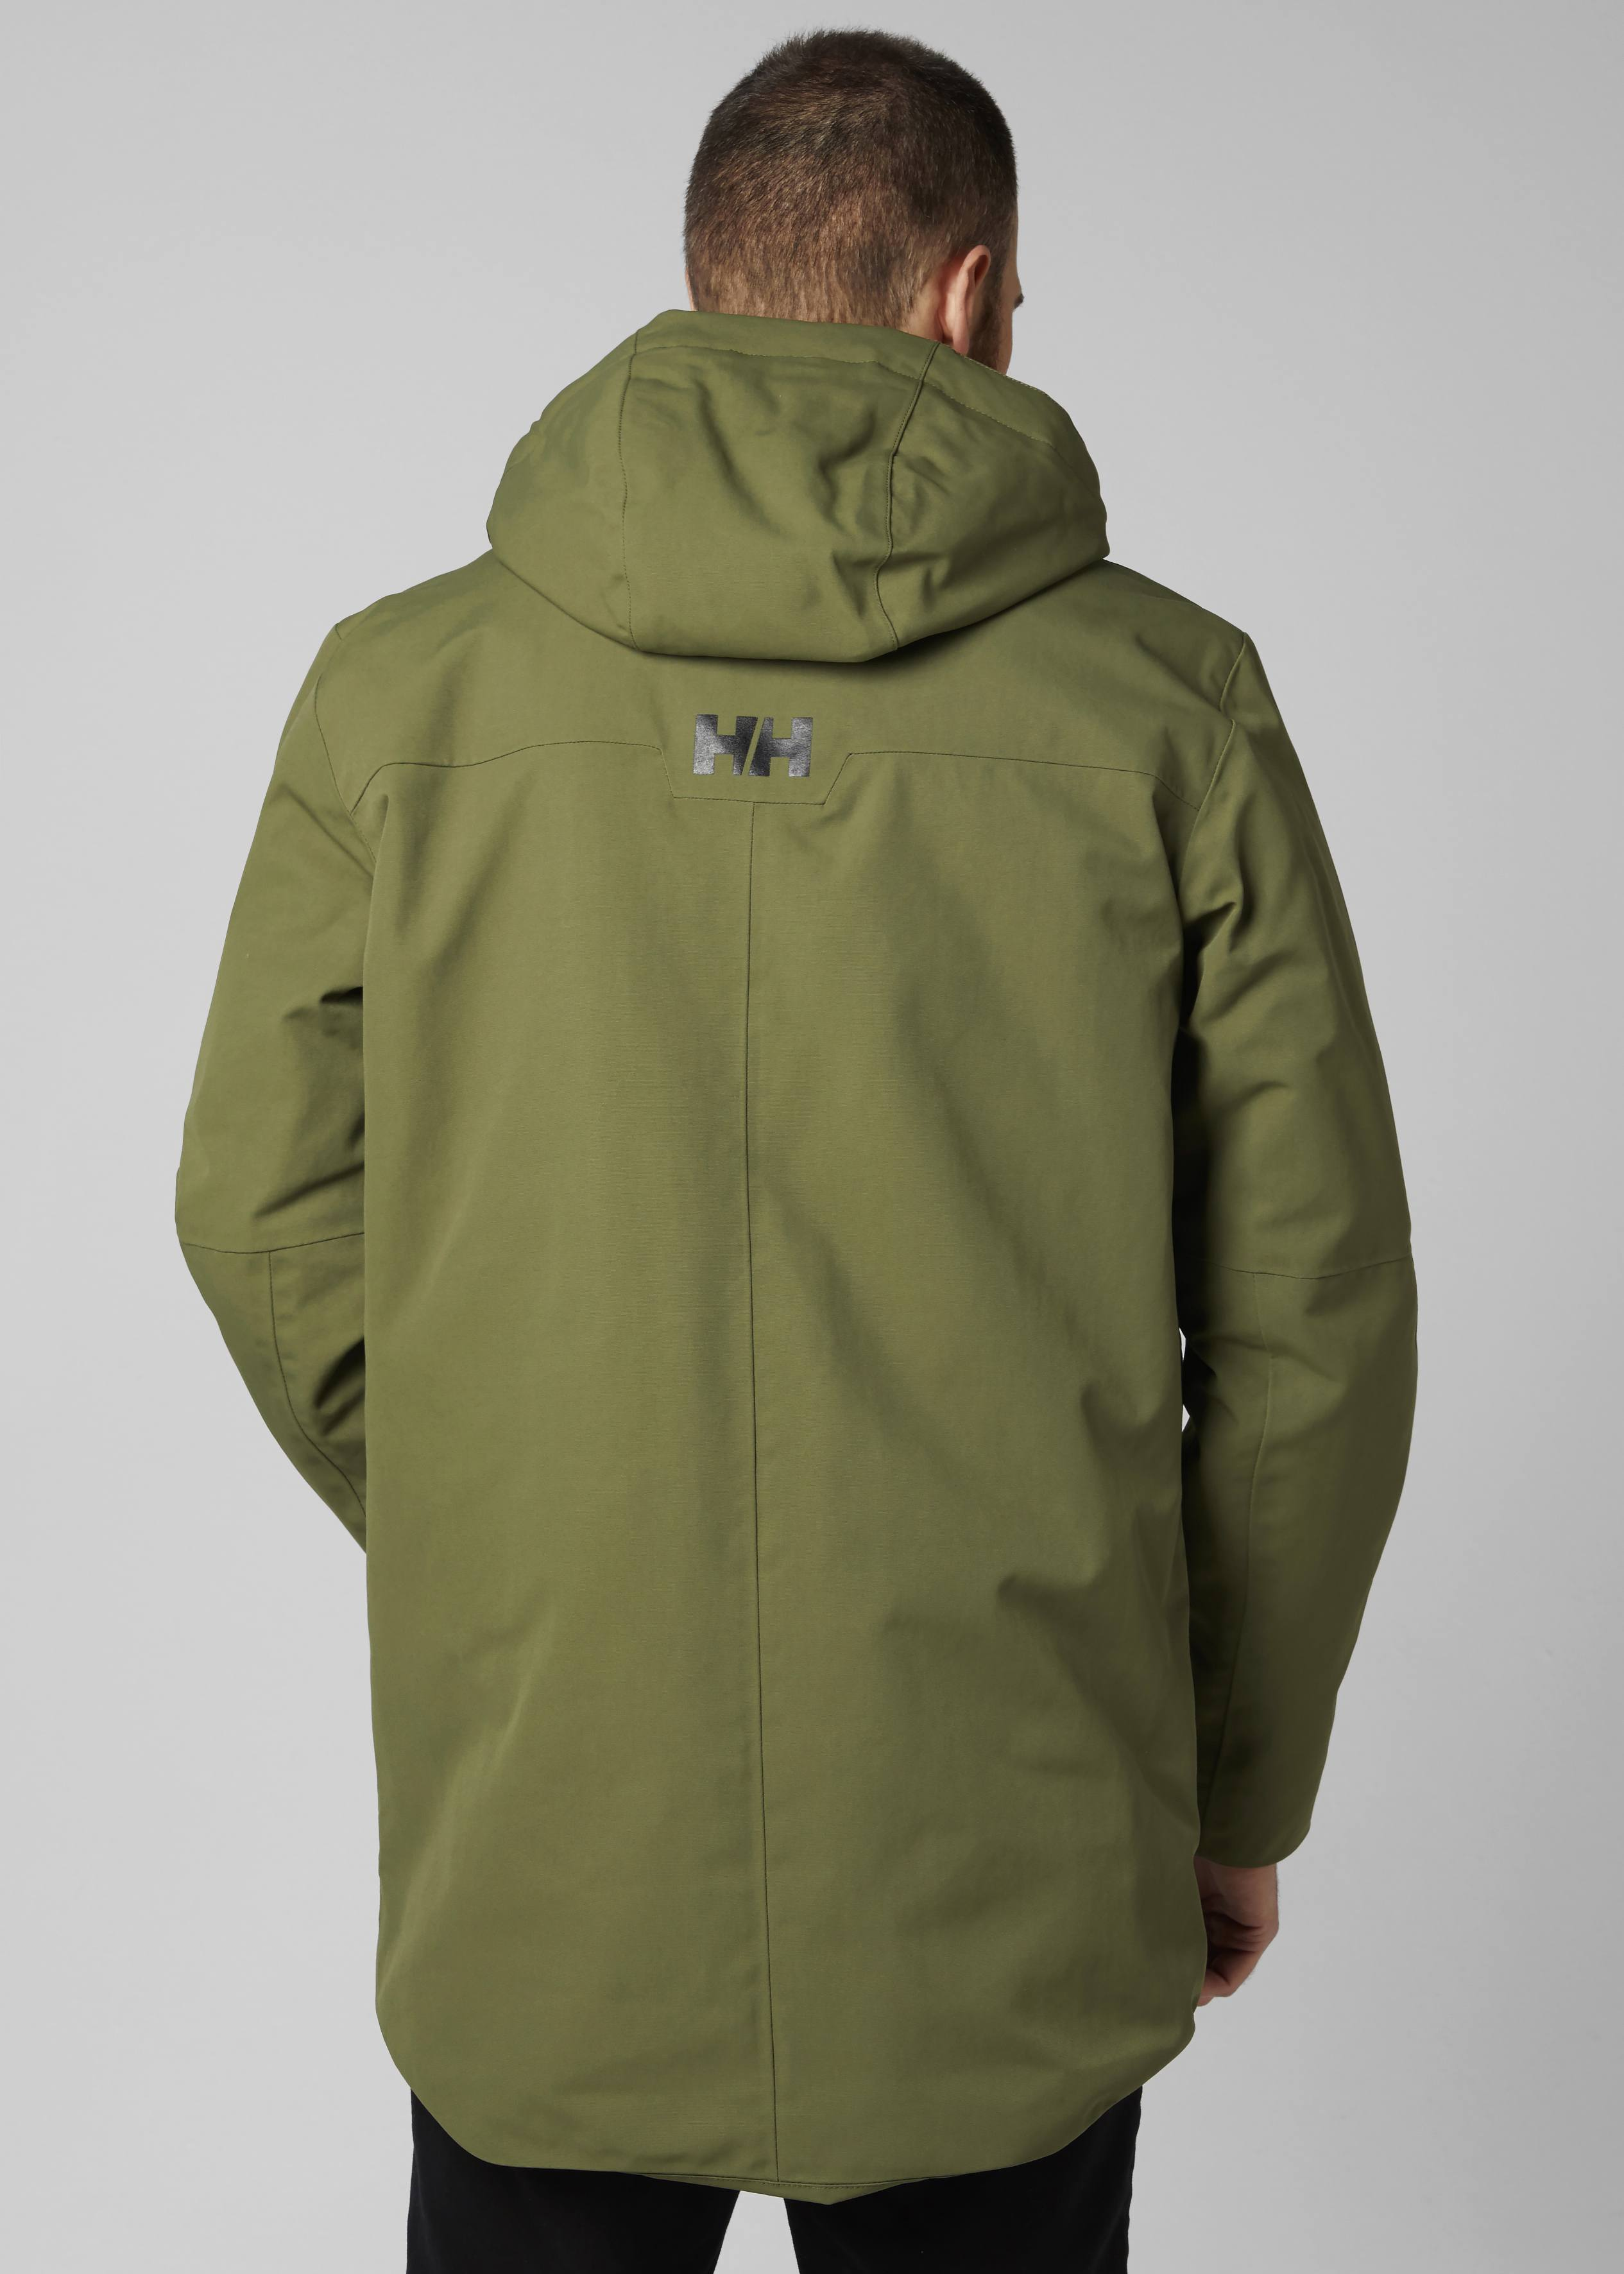 Helly Hansen Urban Long Jacket Scandinavian Outdoor